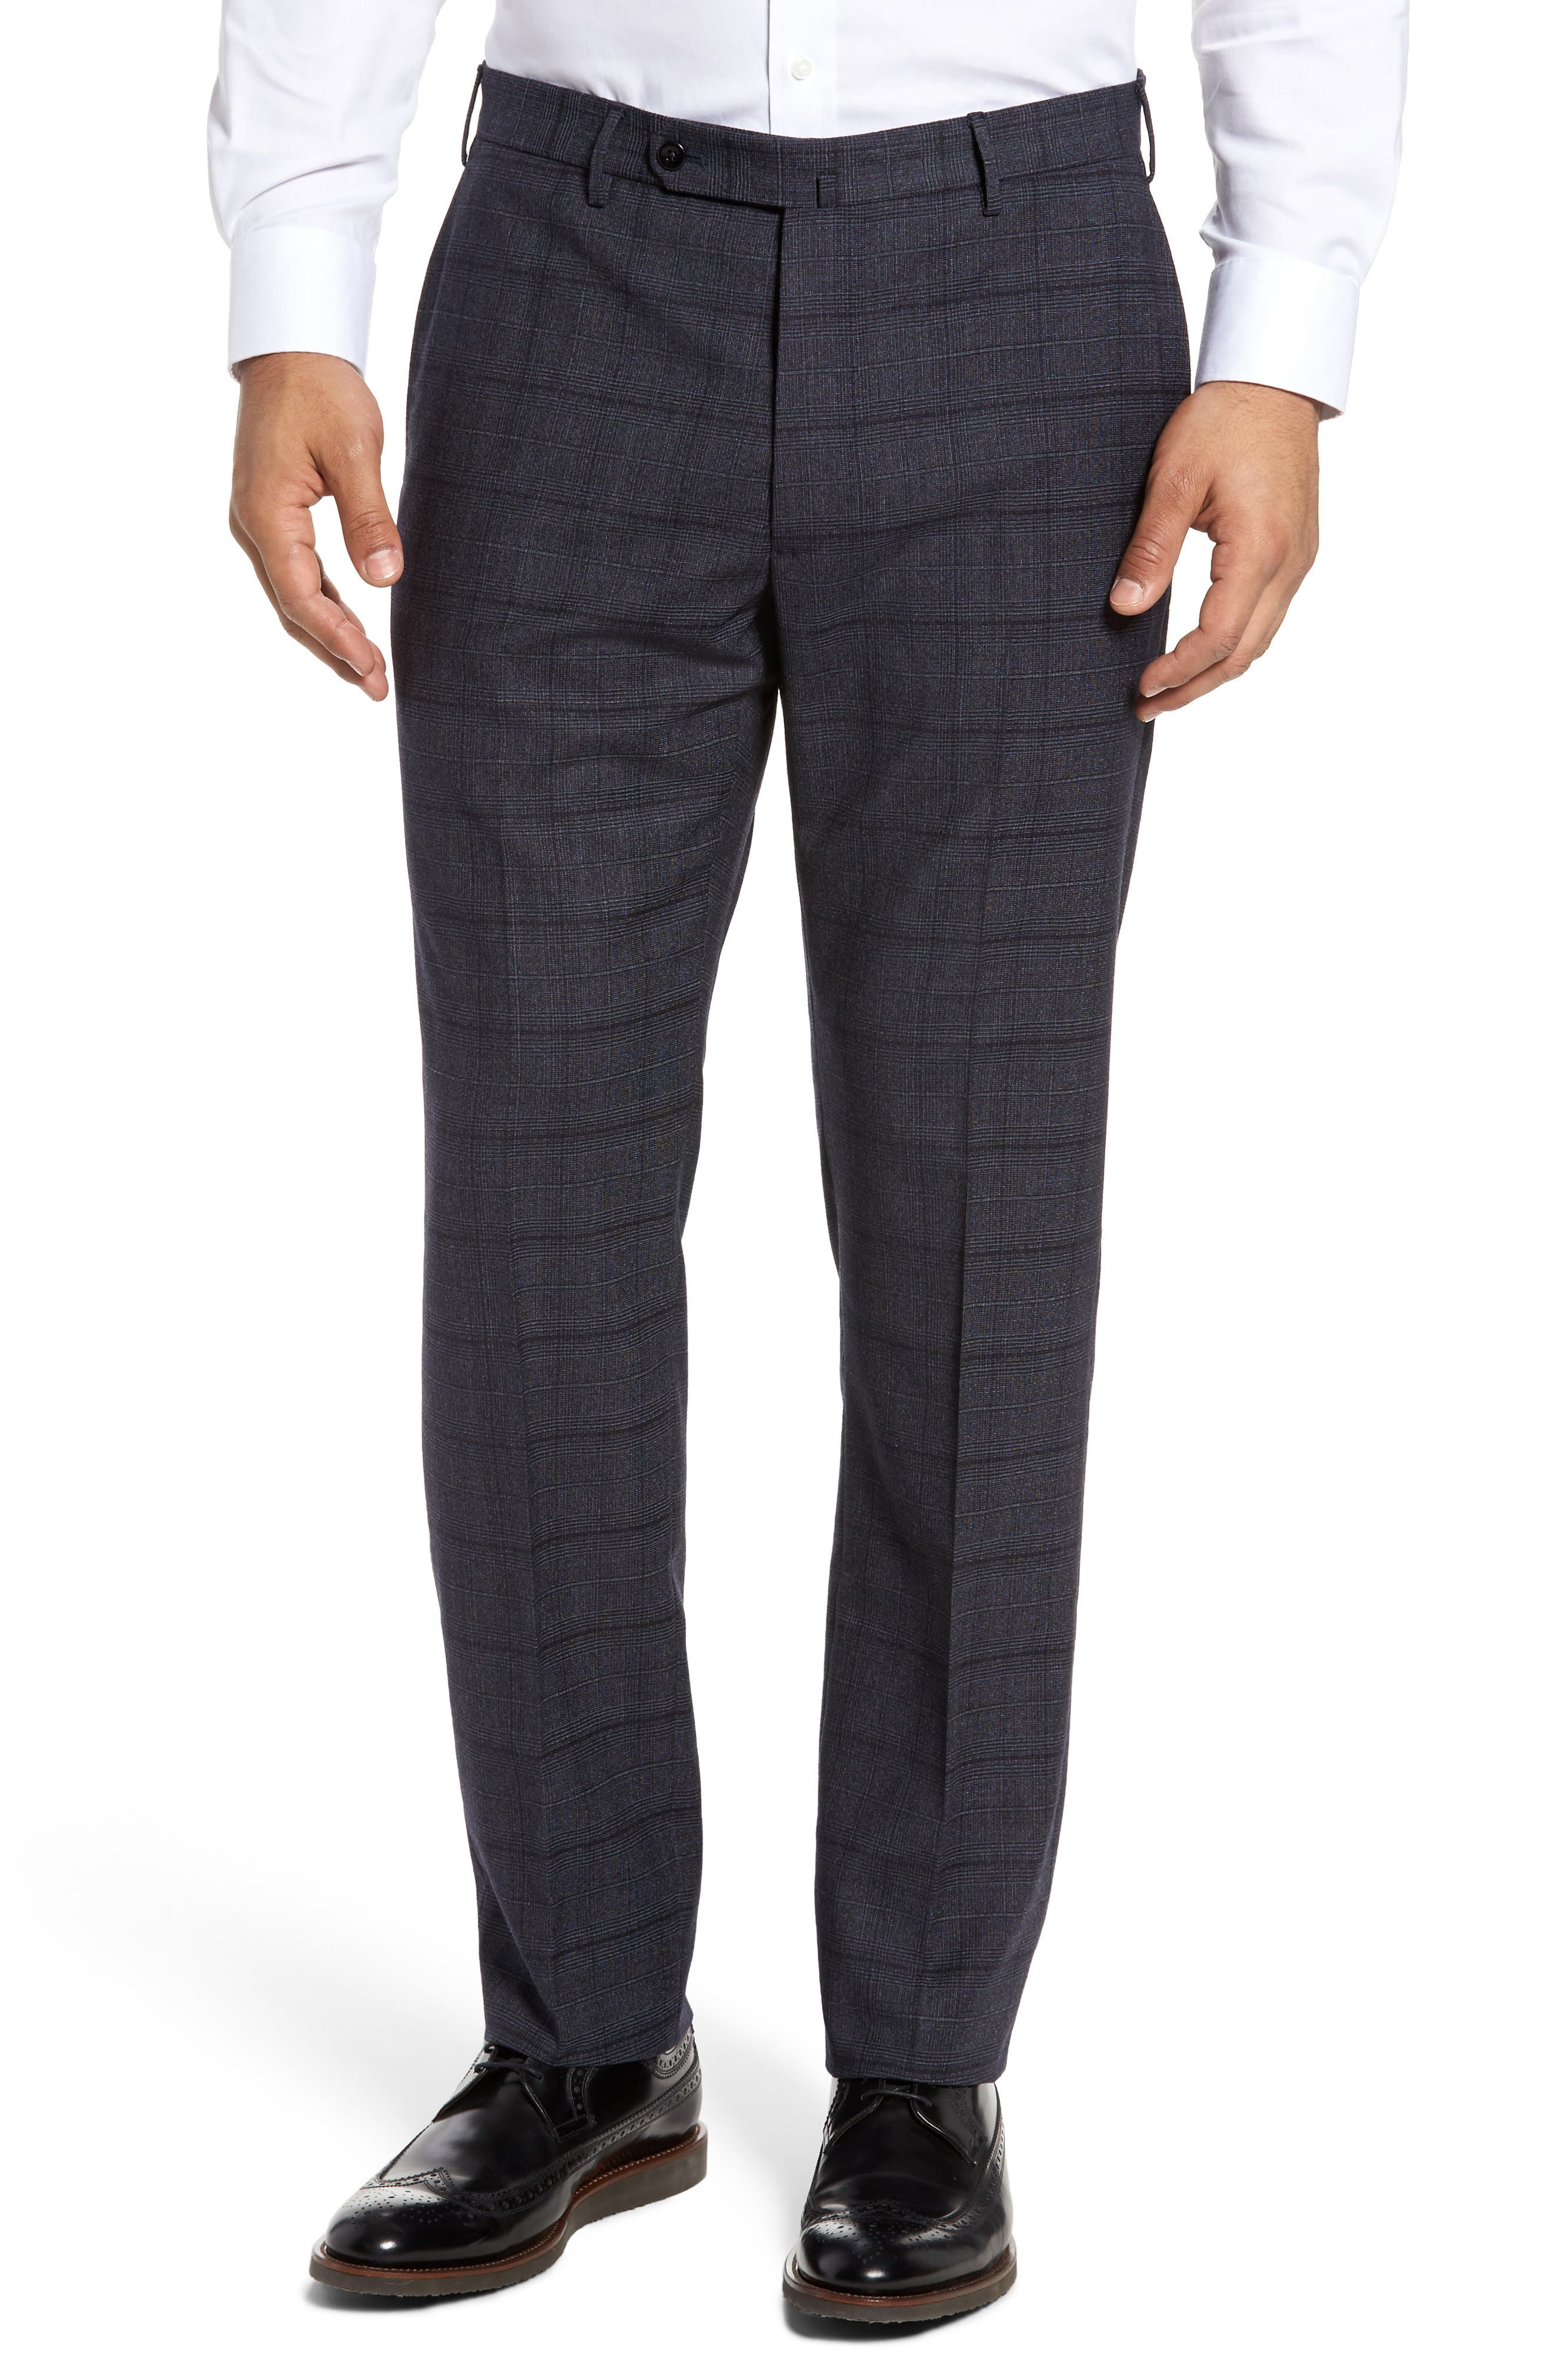 Alternate Image 1 Selected - Incotex Benson Flat Front Trousers